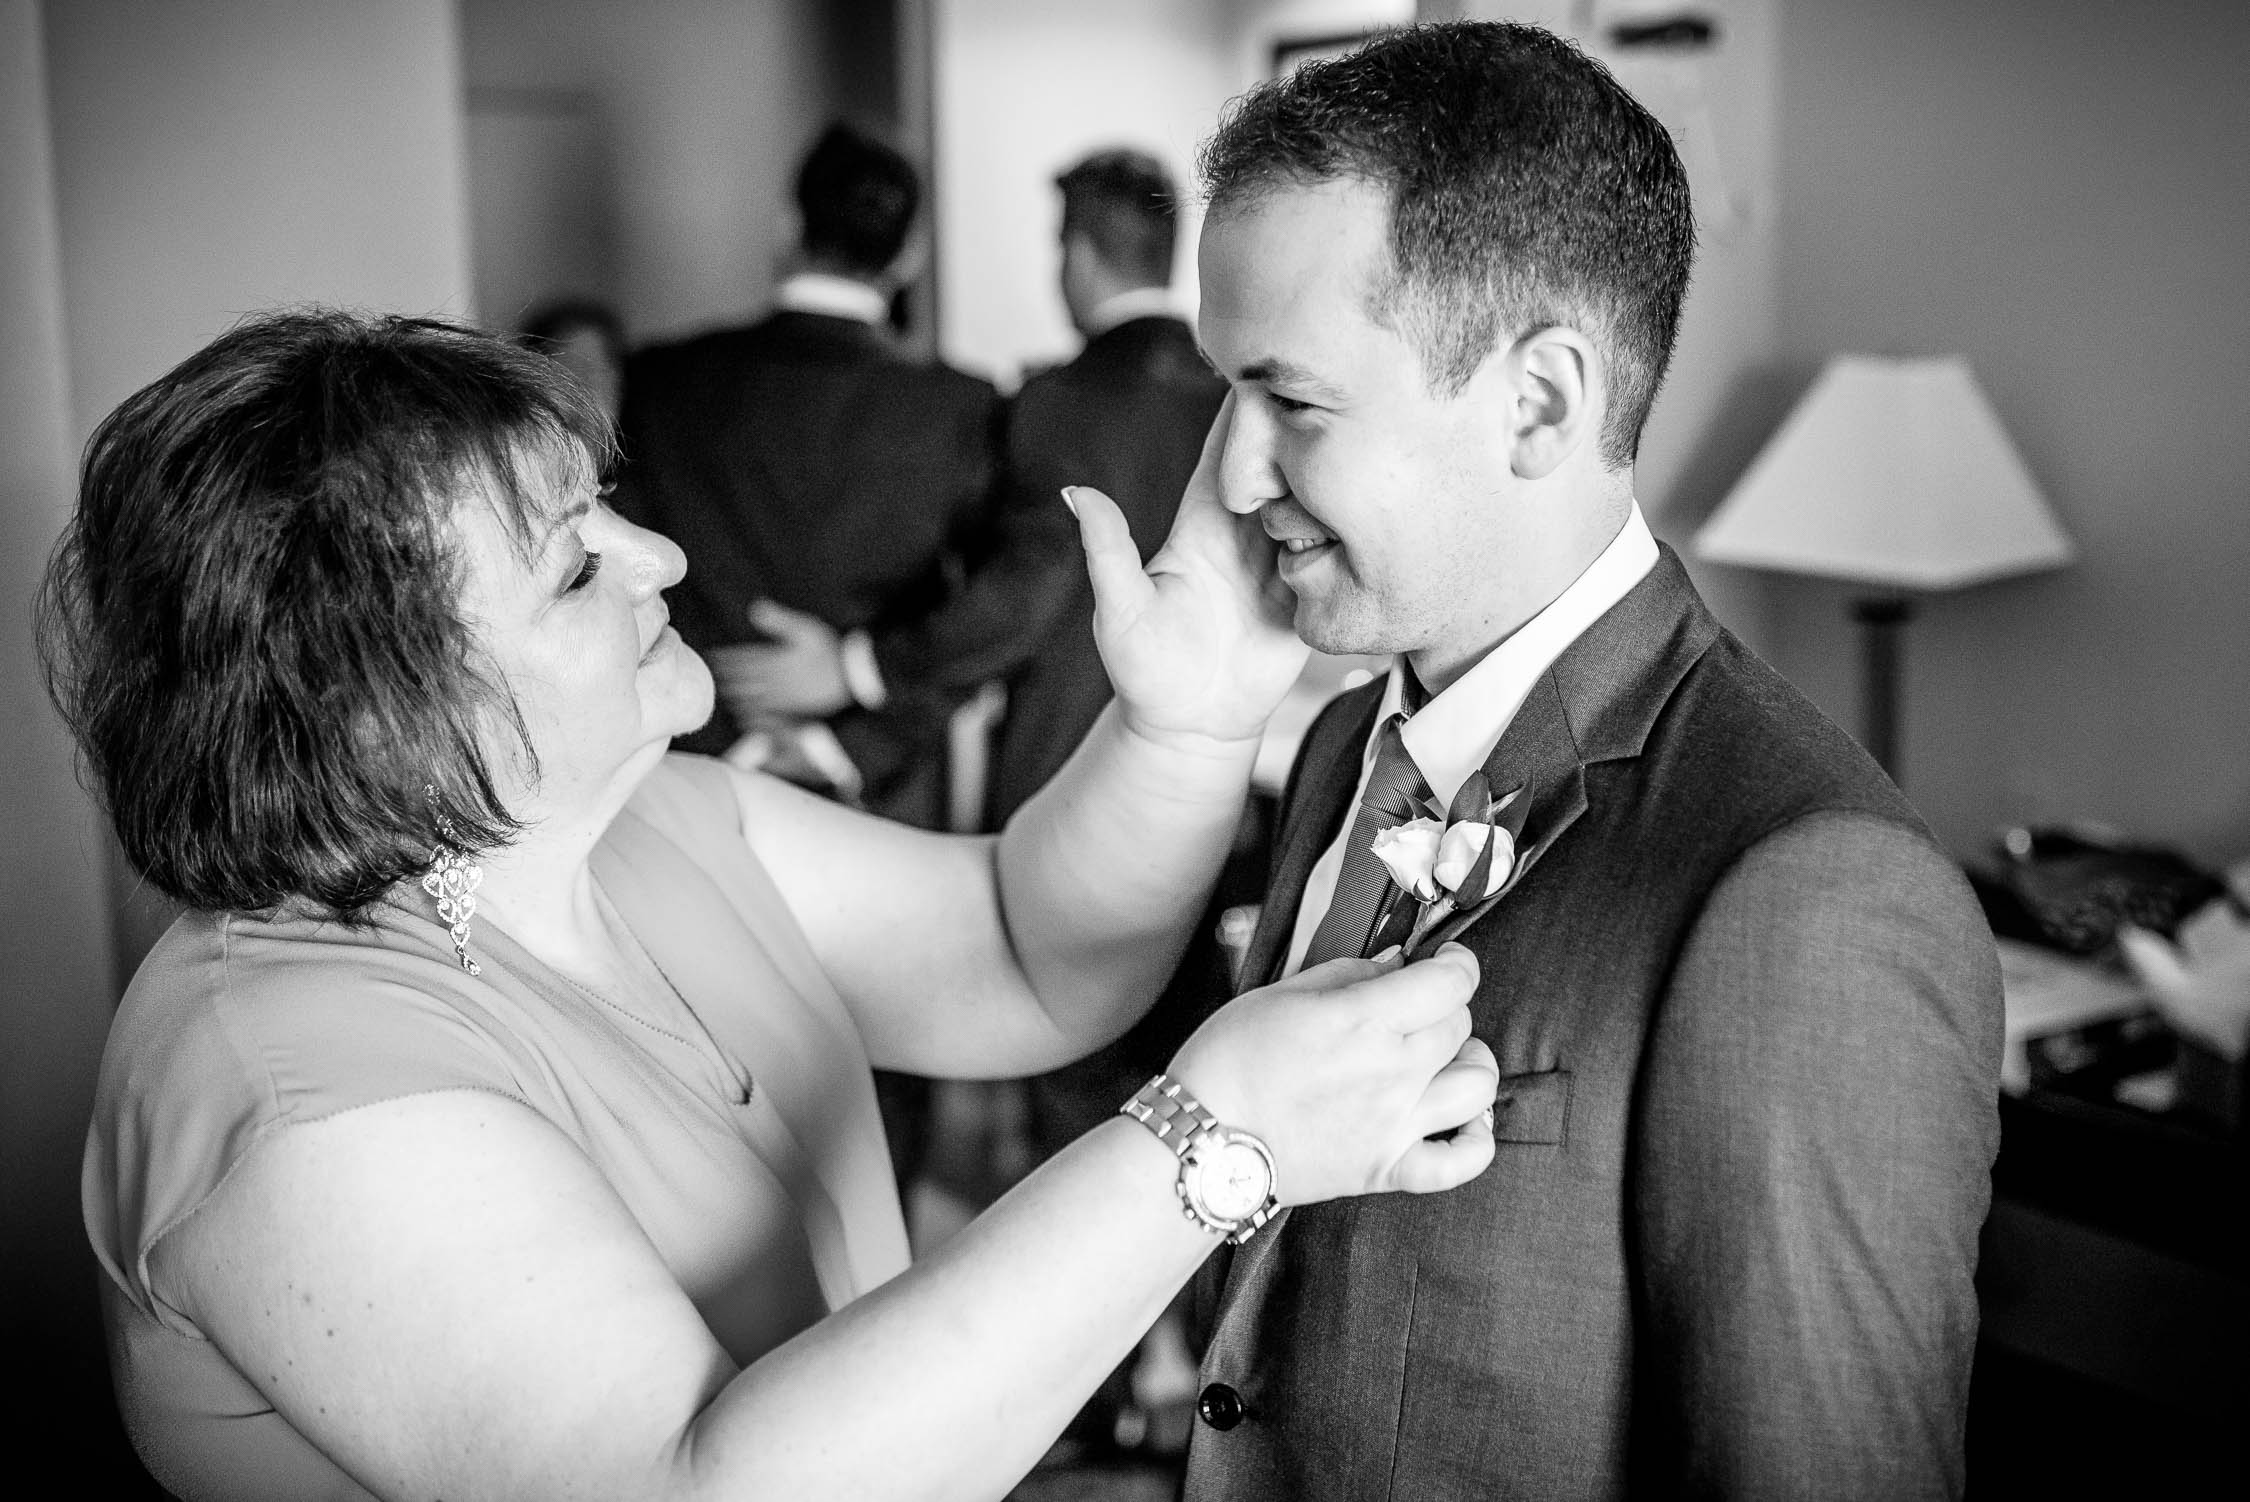 Mother of the groom and her son share a moment together before his wedding at Independence Grove in Libertyville.